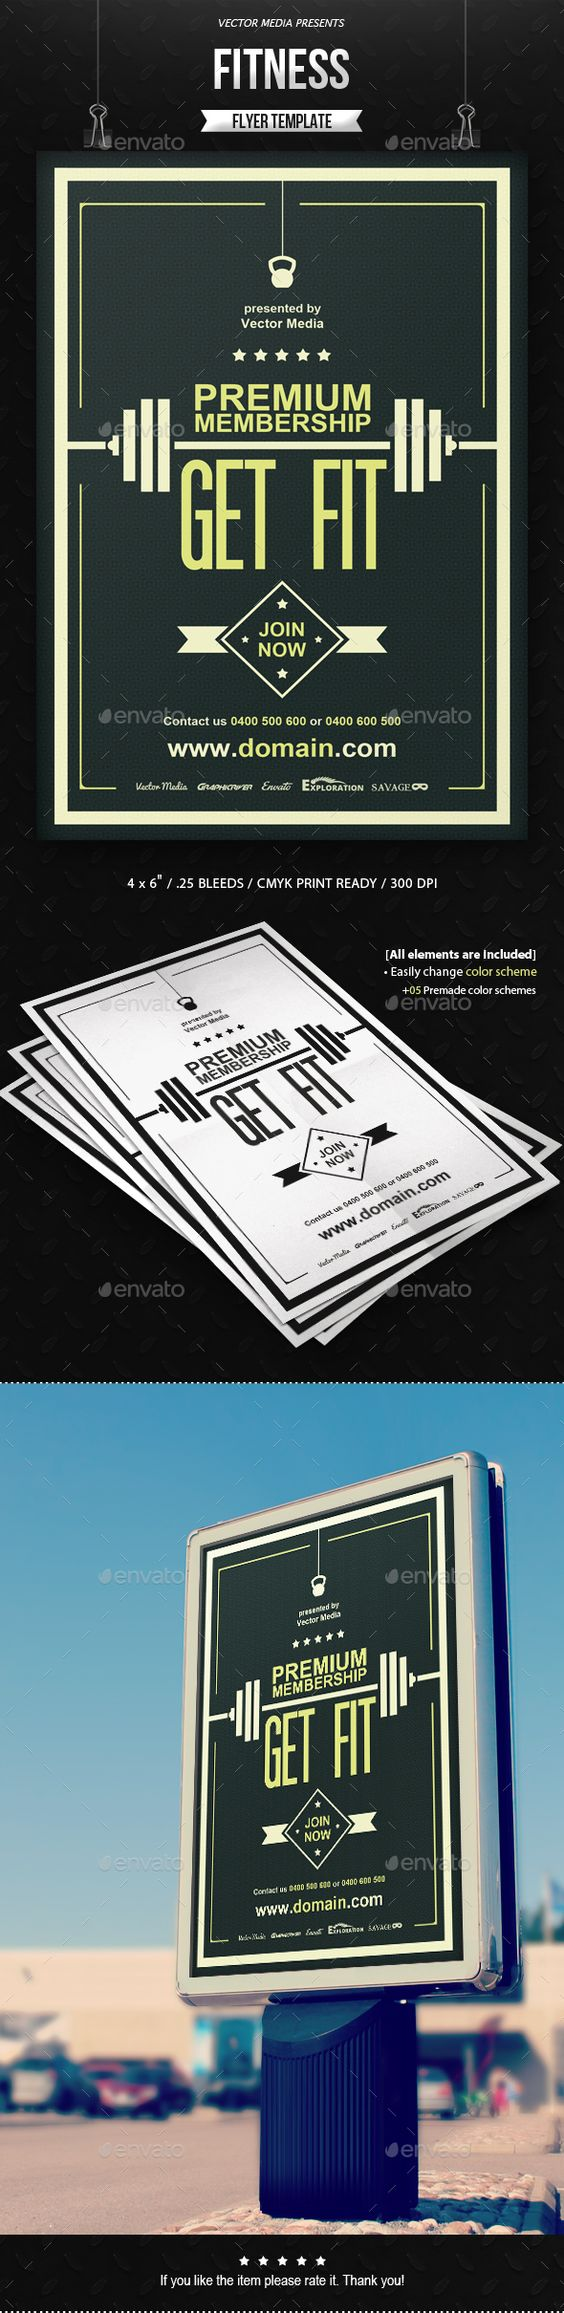 Fitness Flyer Sports Events Best Fitness Flyer Template